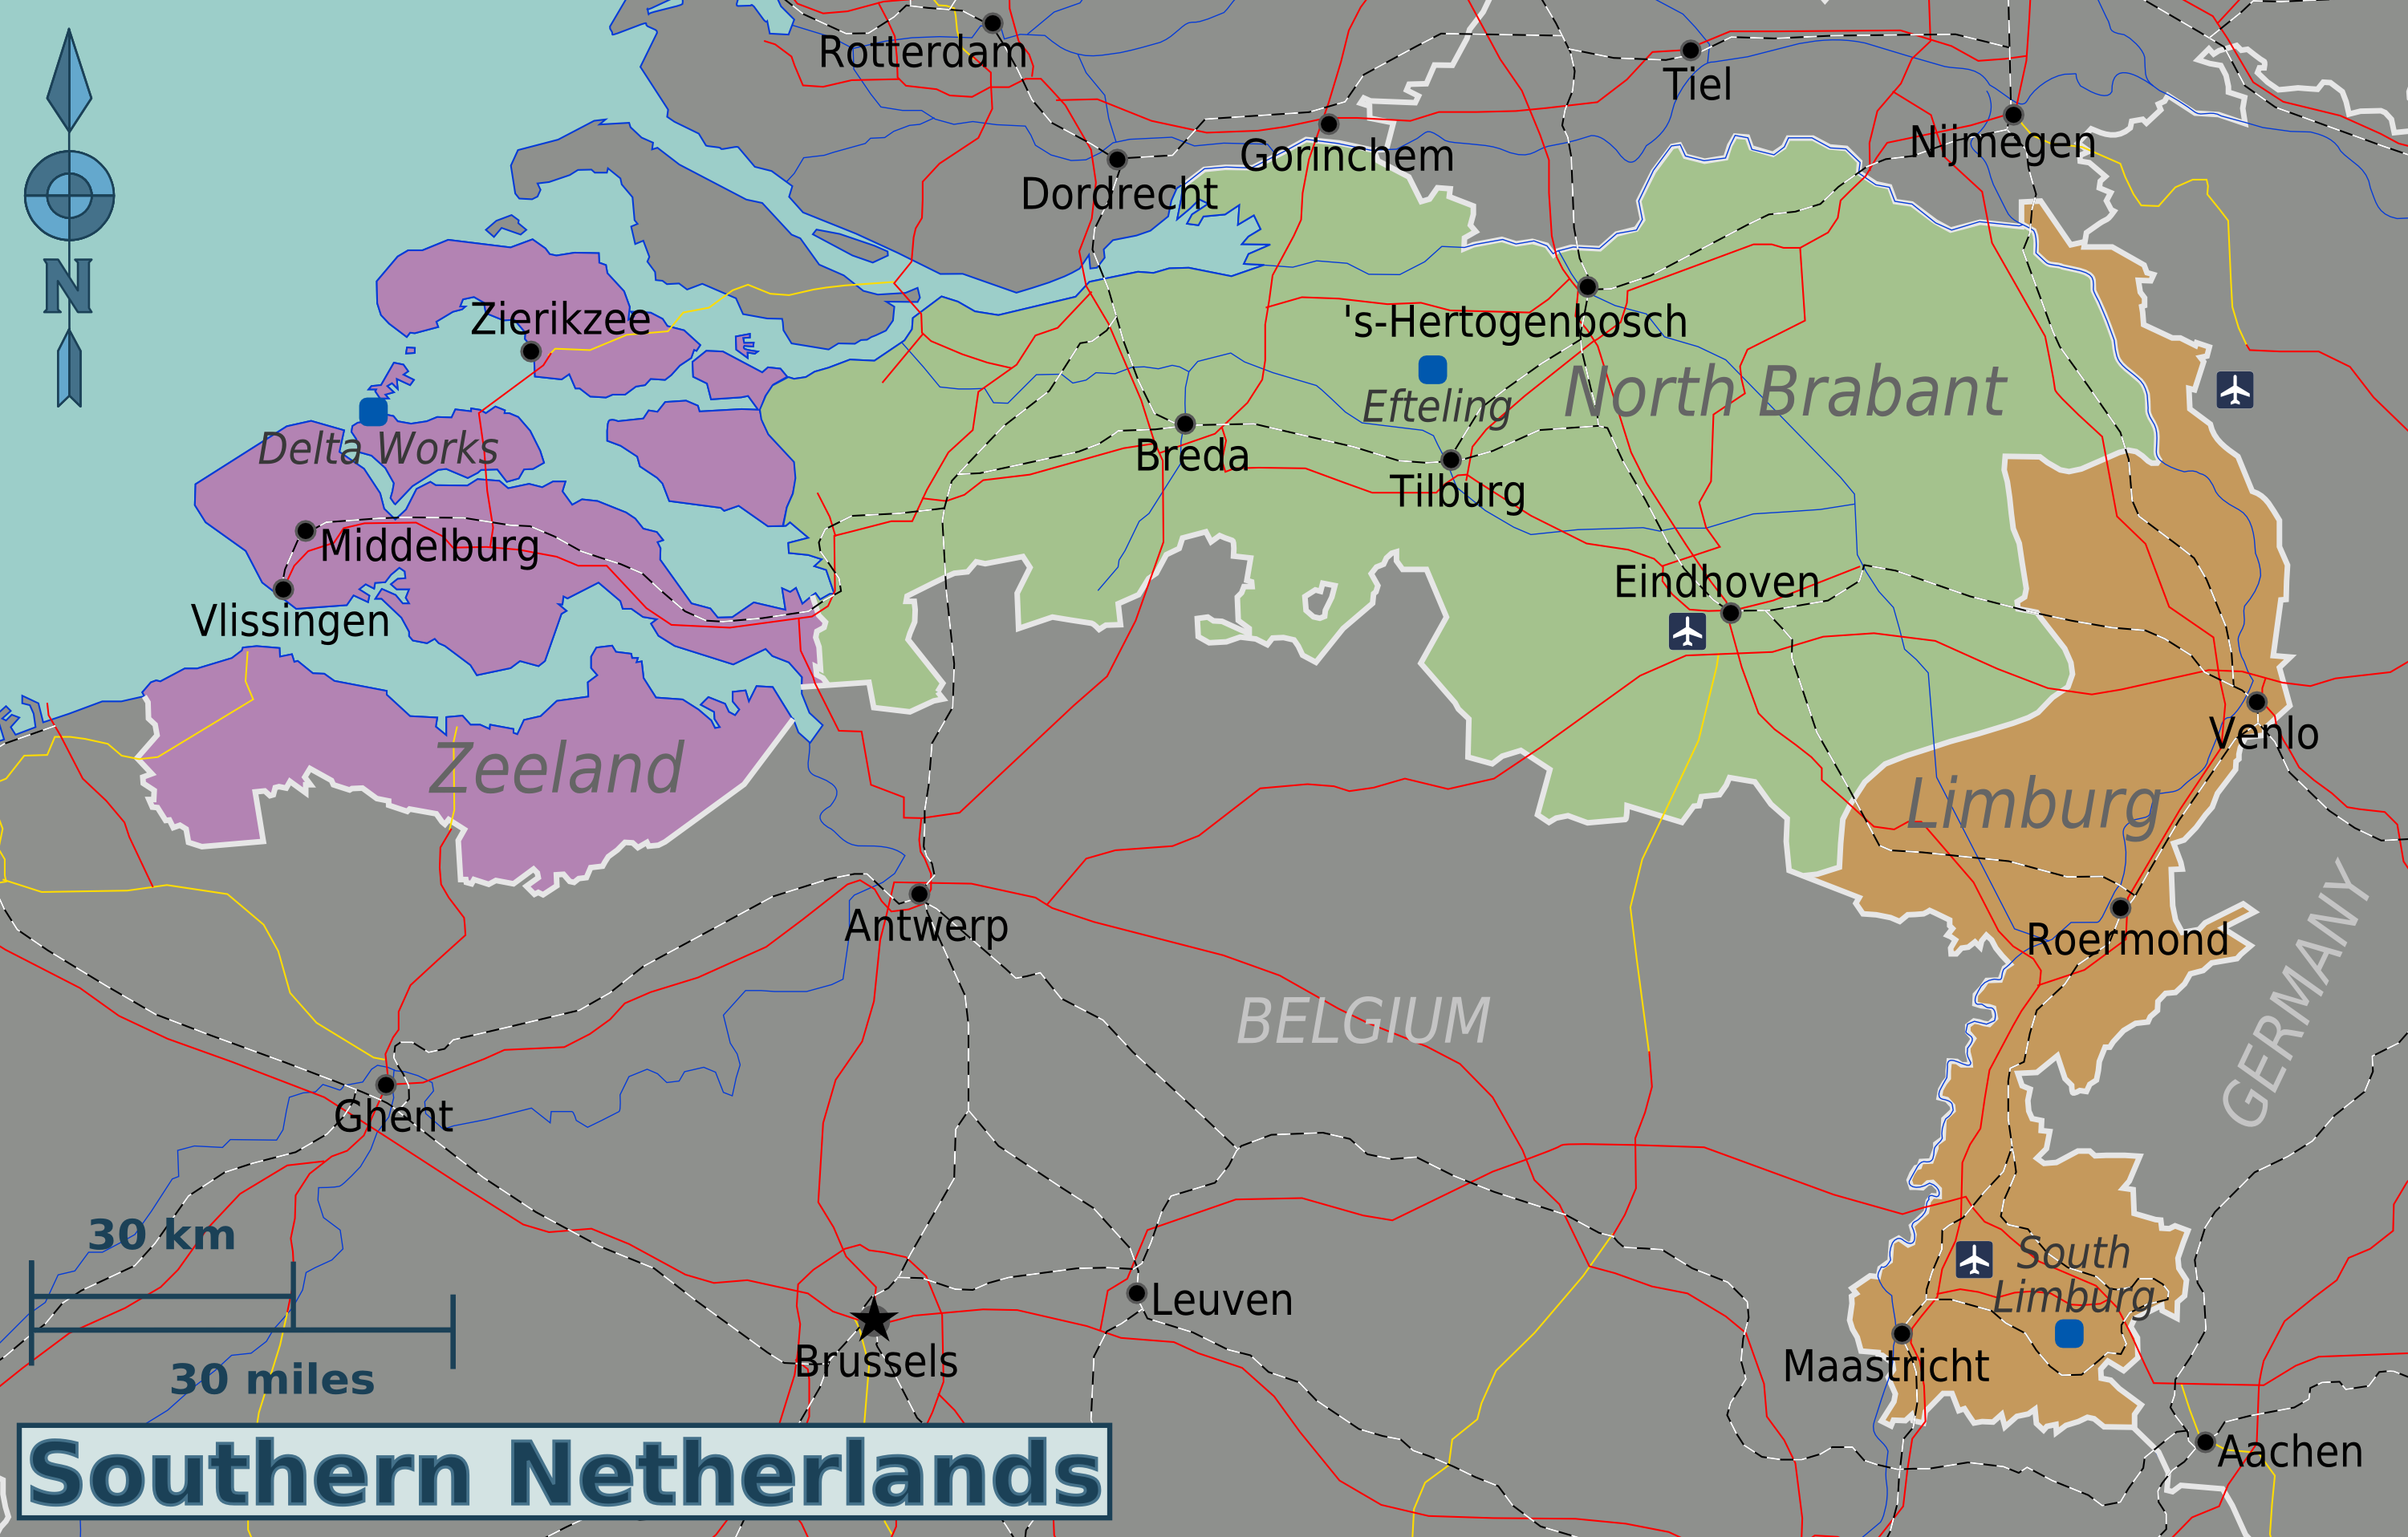 Southern Netherlands – Travel guide at Wikivoyage